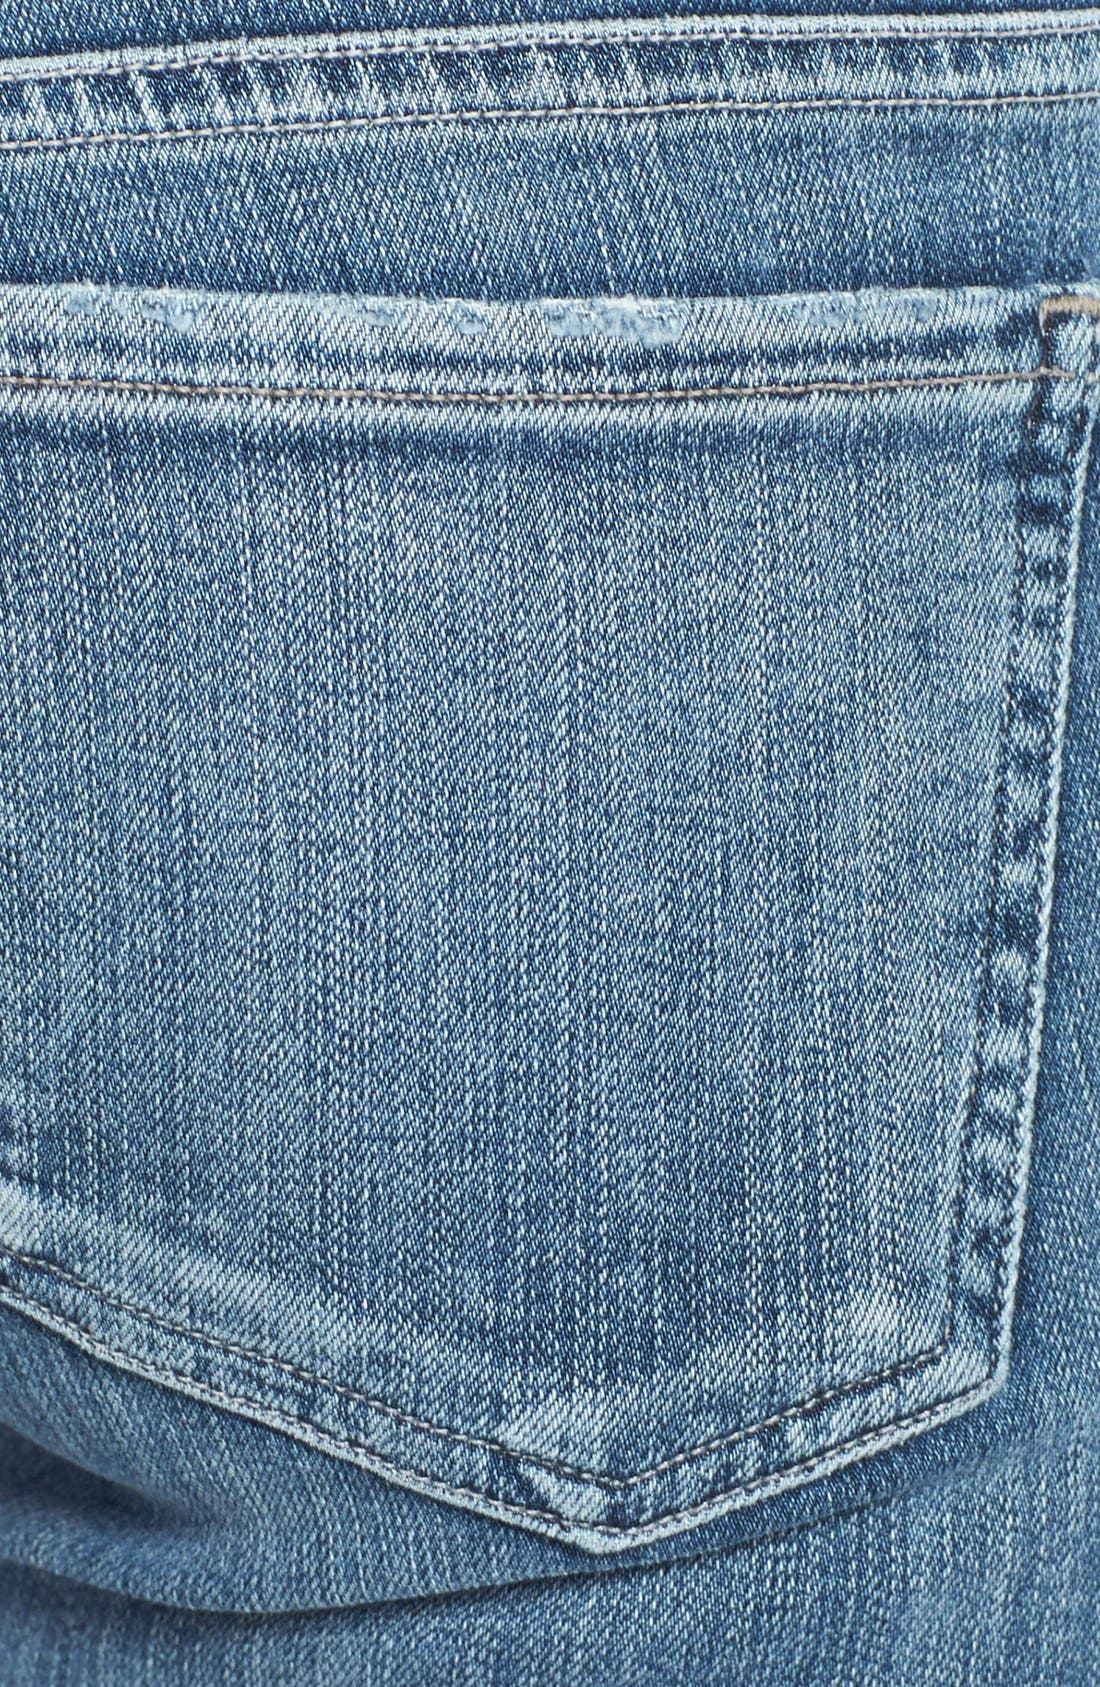 Alternate Image 3  - Citizens of Humanity 'Racer' Low Rise Skinny Jeans (Gaze)